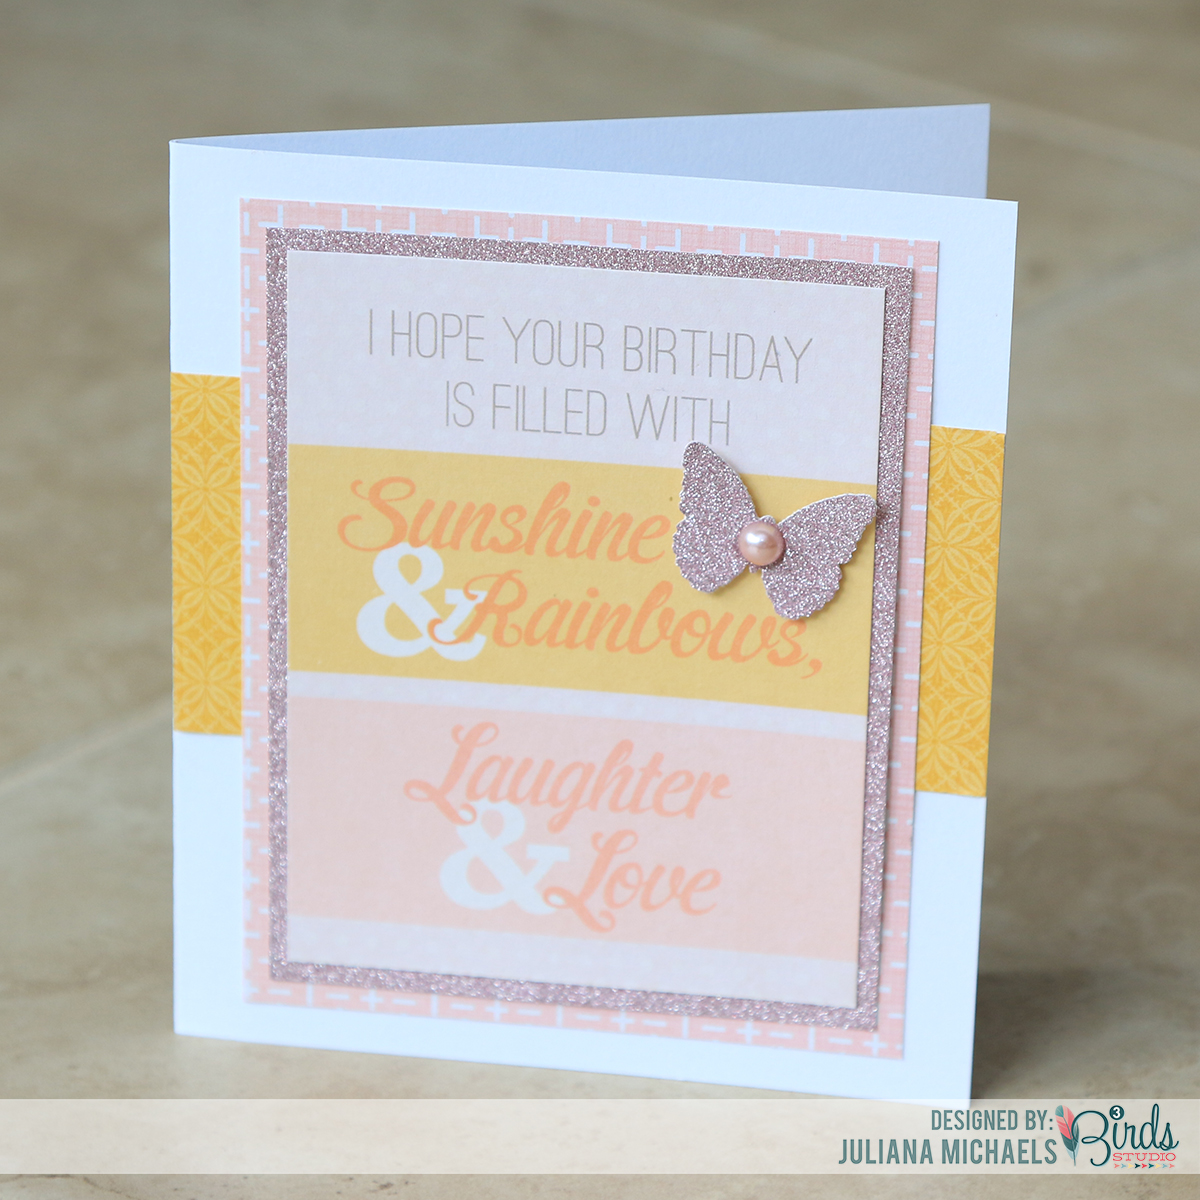 Sunshine & Rainbows feminine birthday cards by Juliana Michaels for 3 Birds Design